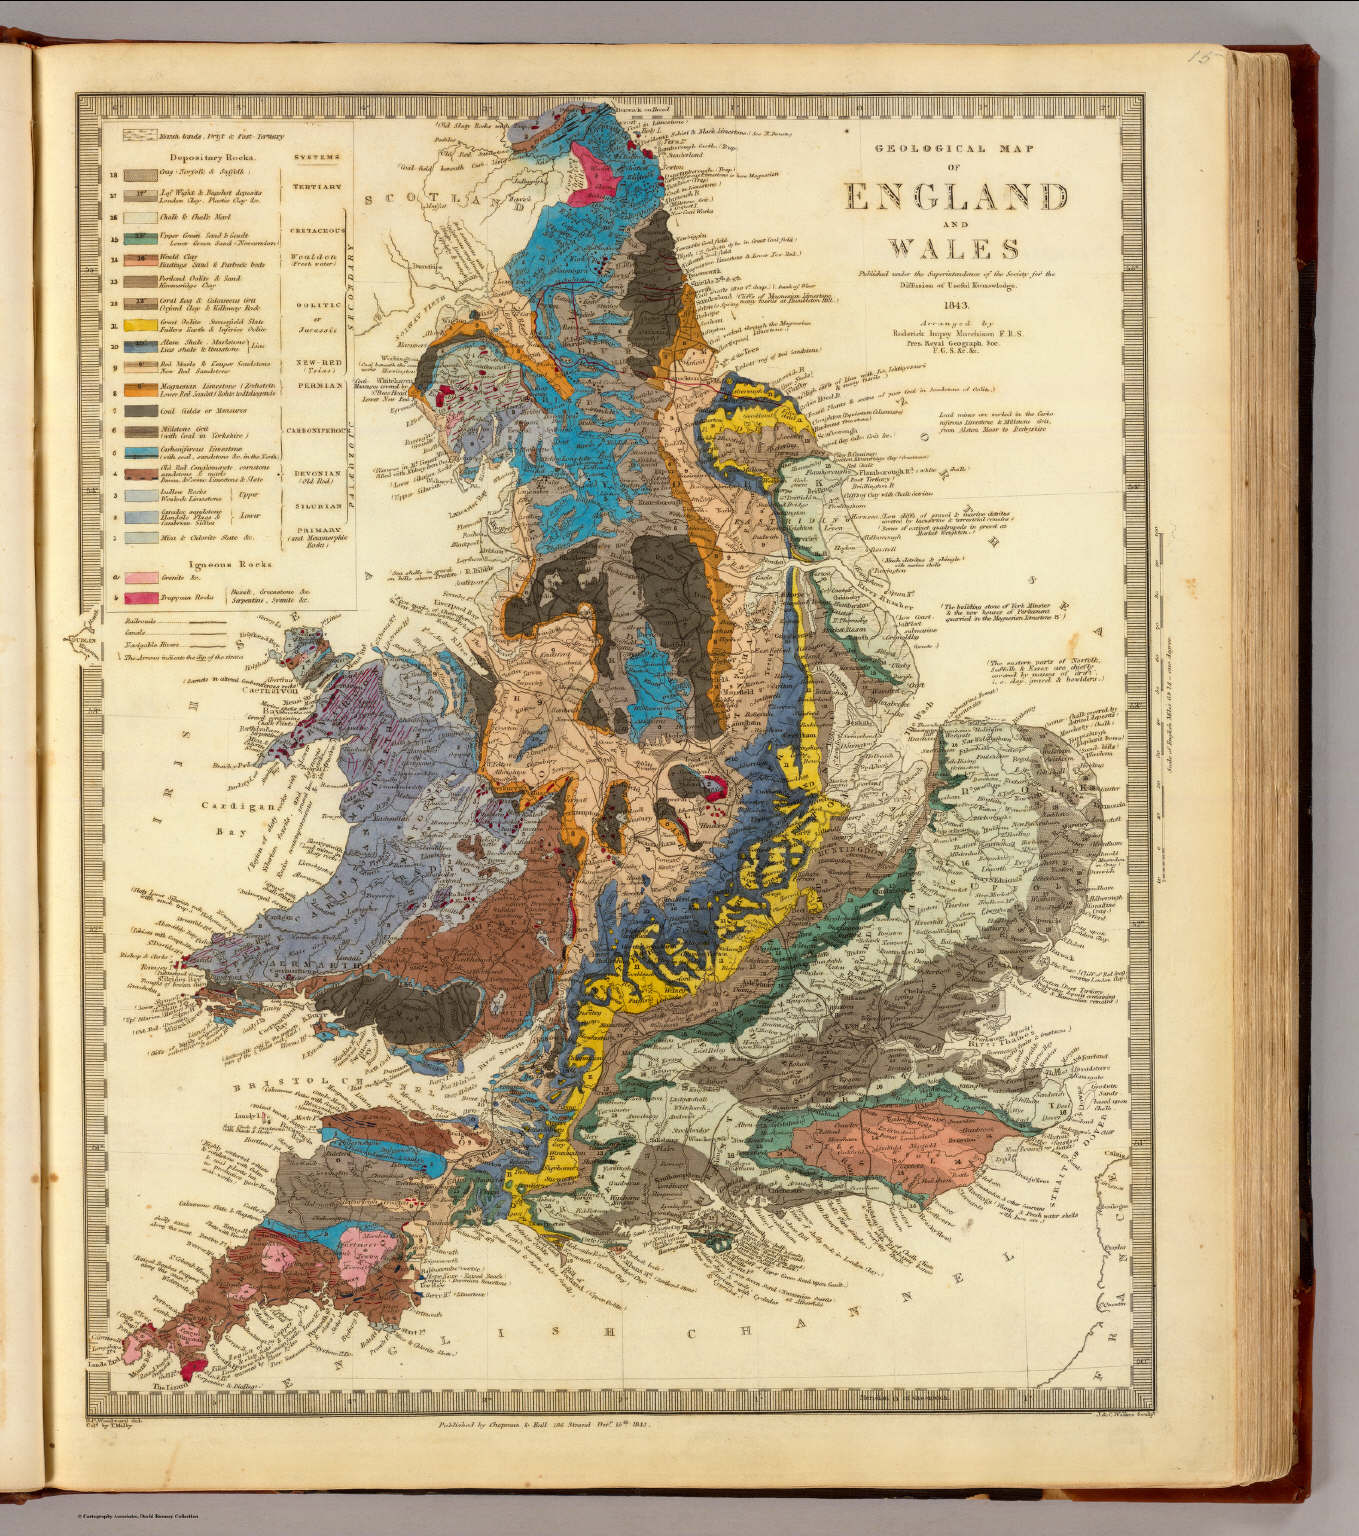 Geological map england wales david rumsey historical map geological map england wales gumiabroncs Choice Image